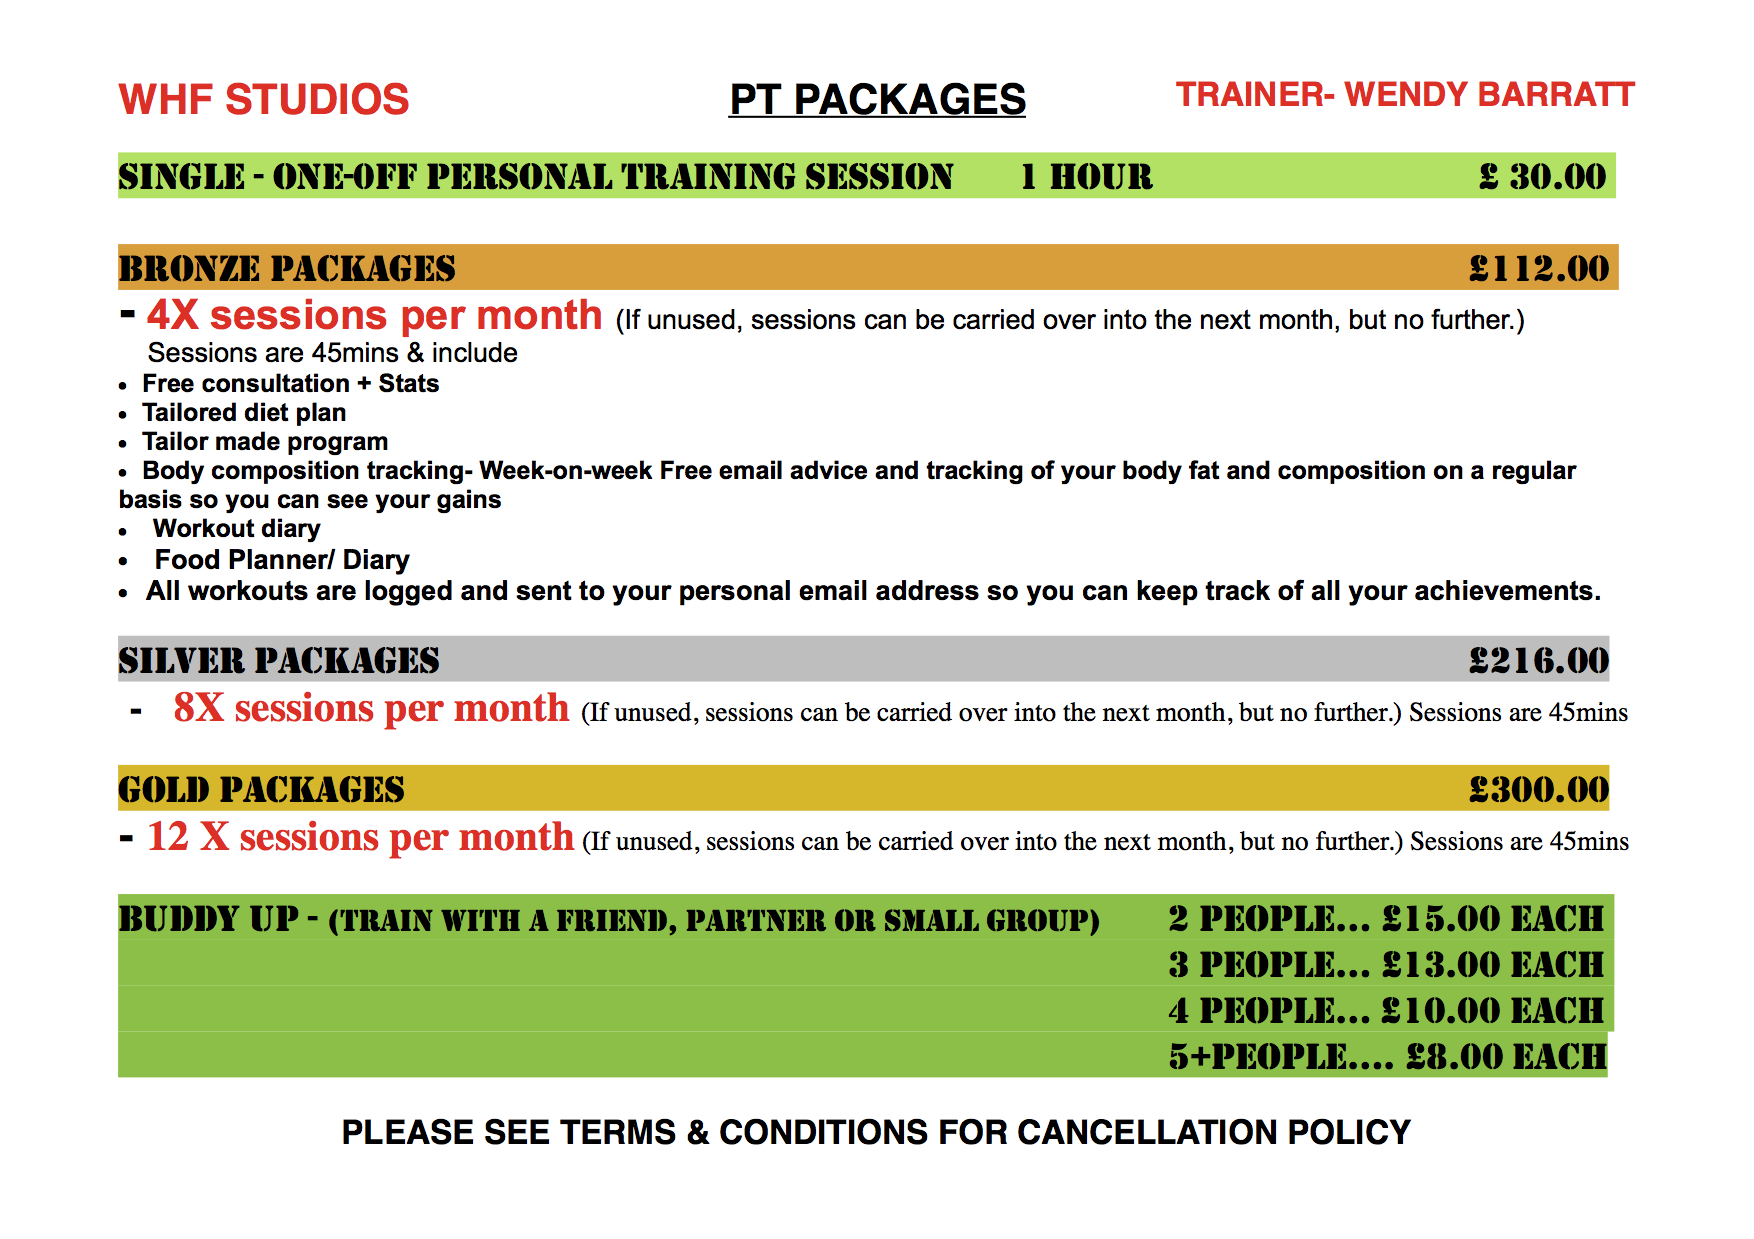 whf-pt-packages-17